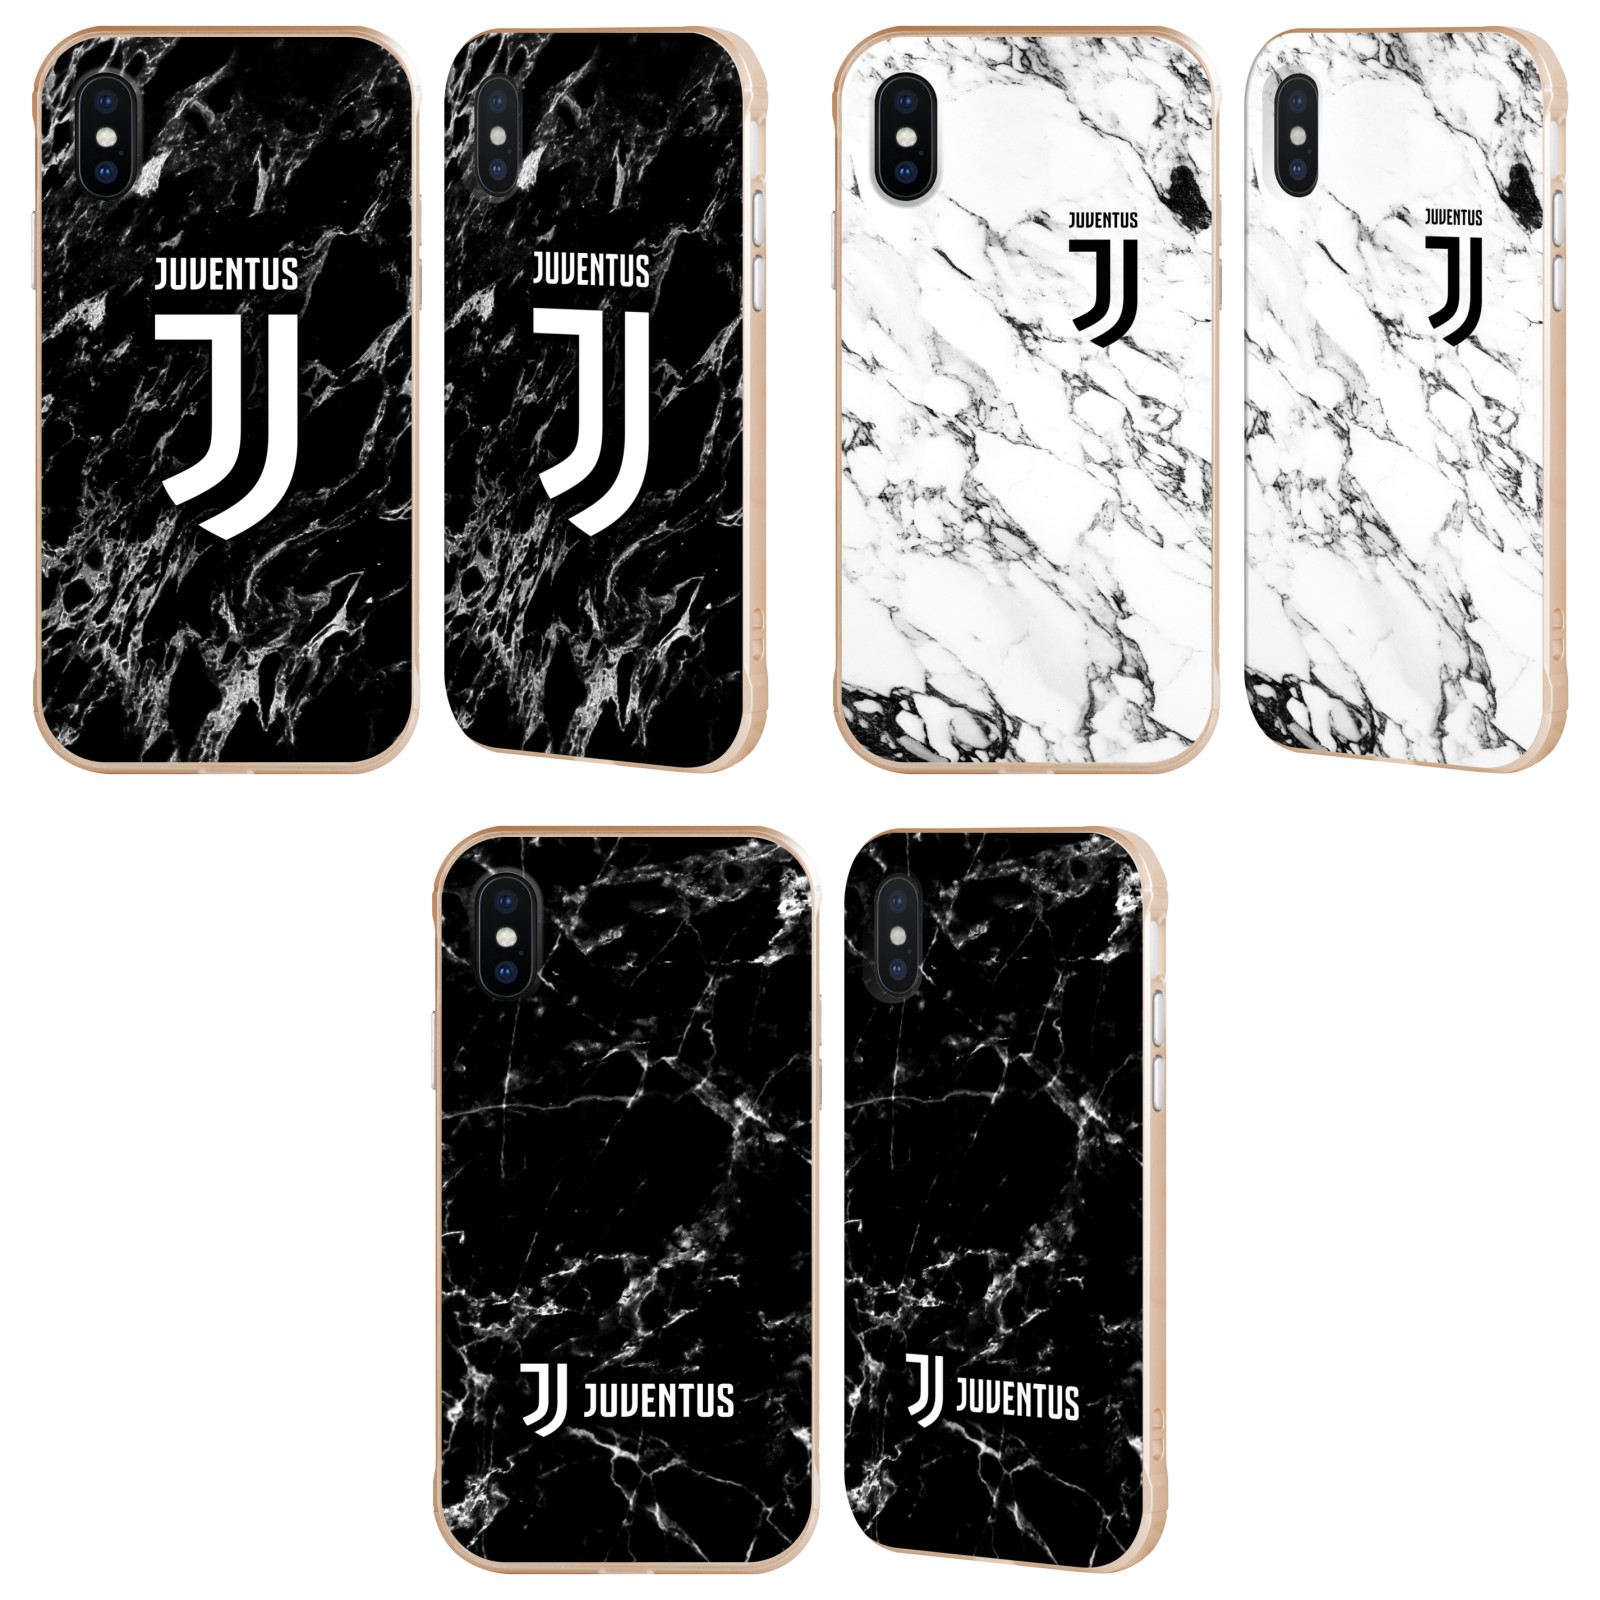 JUVENTUS-FOOTBALL-CLUB-2017-18-MARBLE-GOLD-FENDER-CASE-FOR-APPLE-iPHONE-PHONES